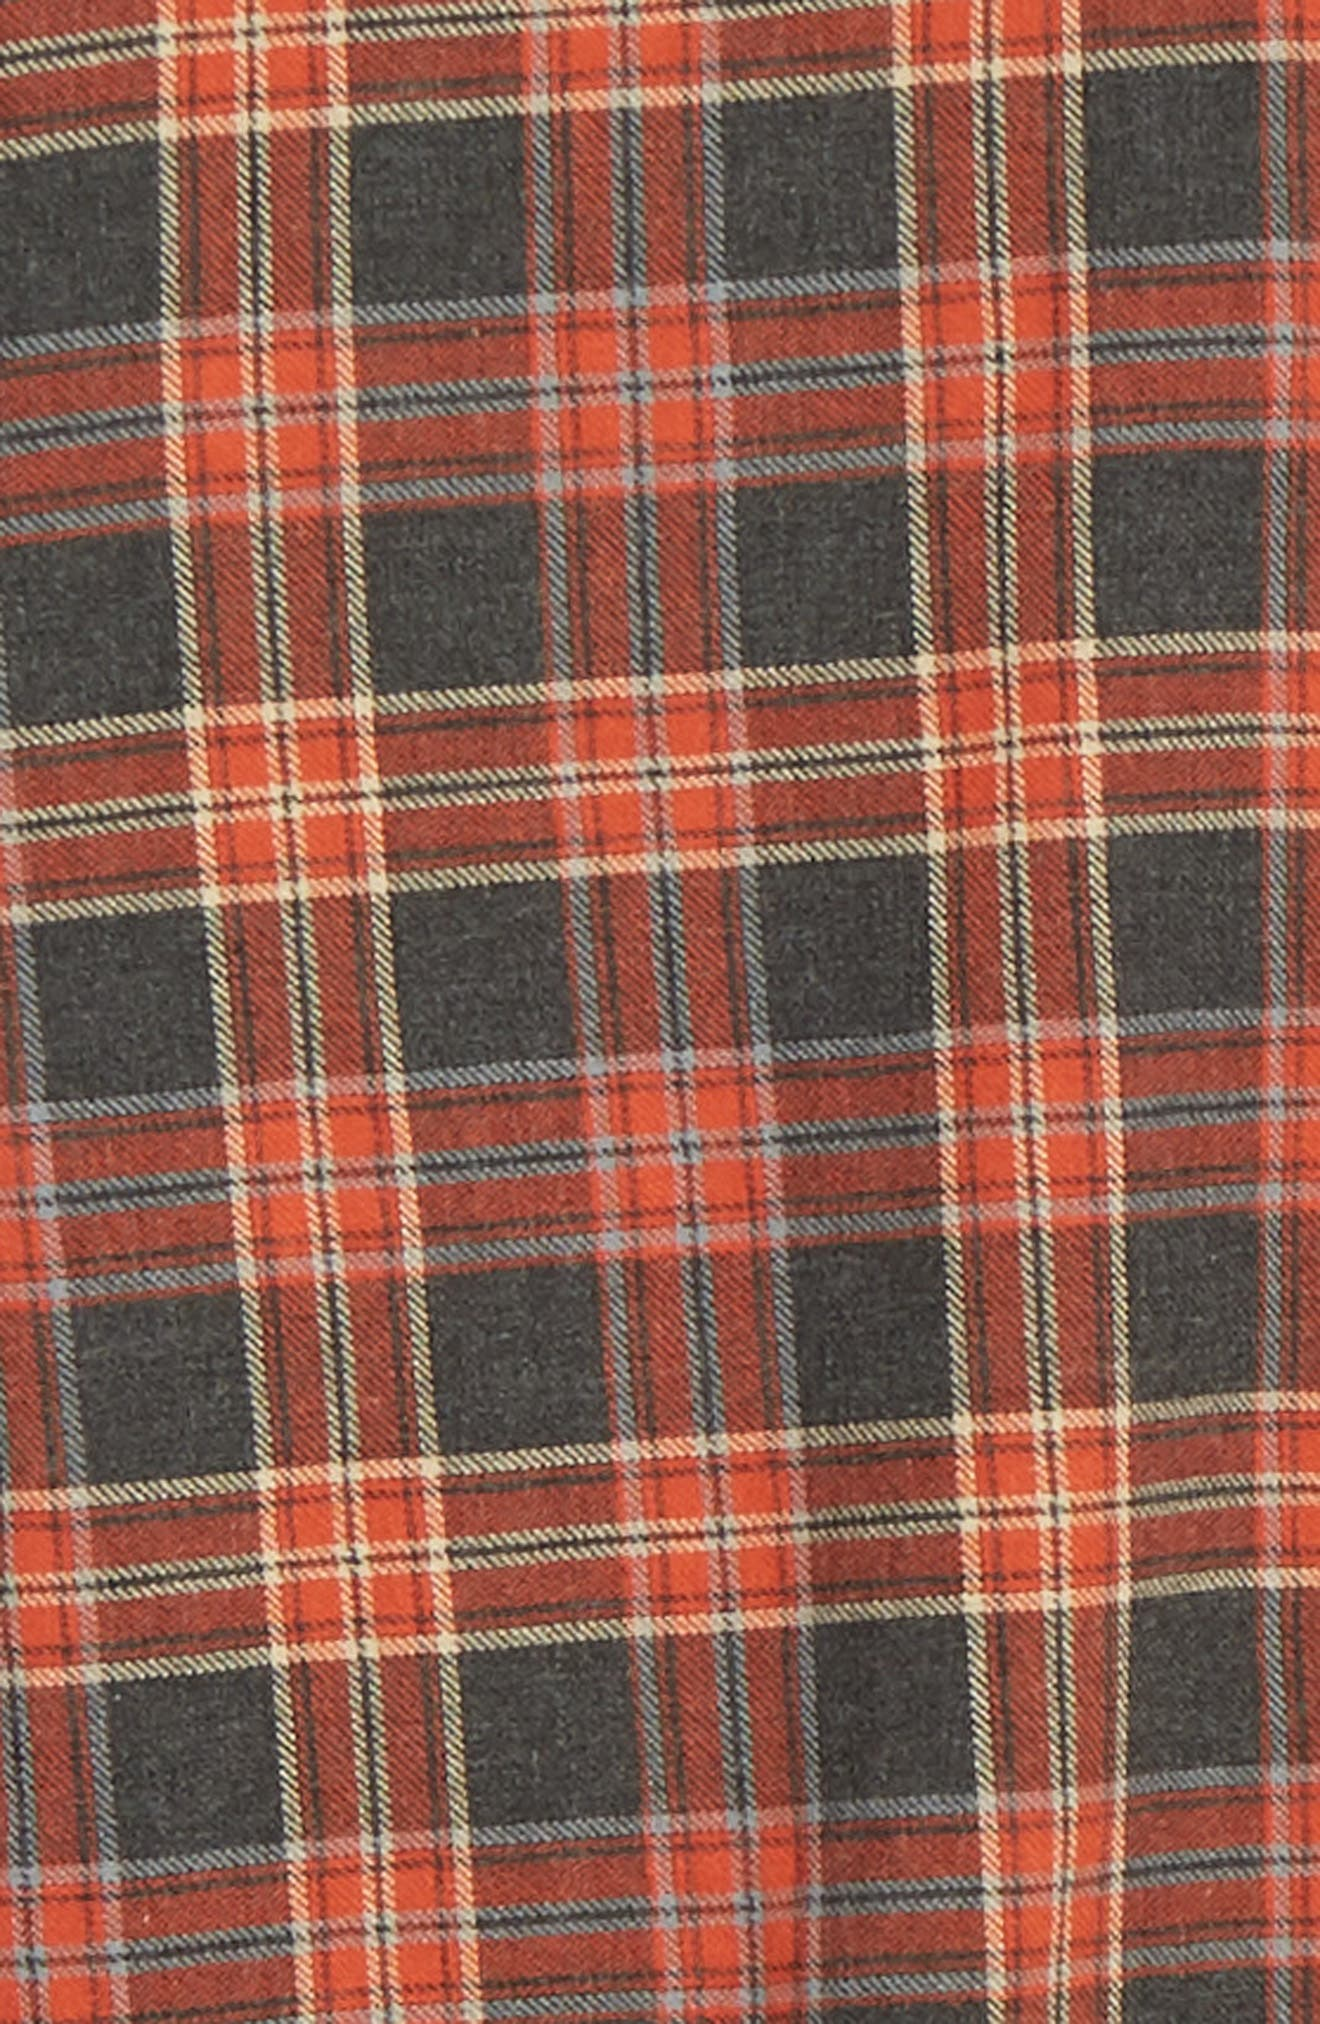 THE KOOPLES, Plaid Regular Fit Flannel Shirt, Alternate thumbnail 6, color, 800